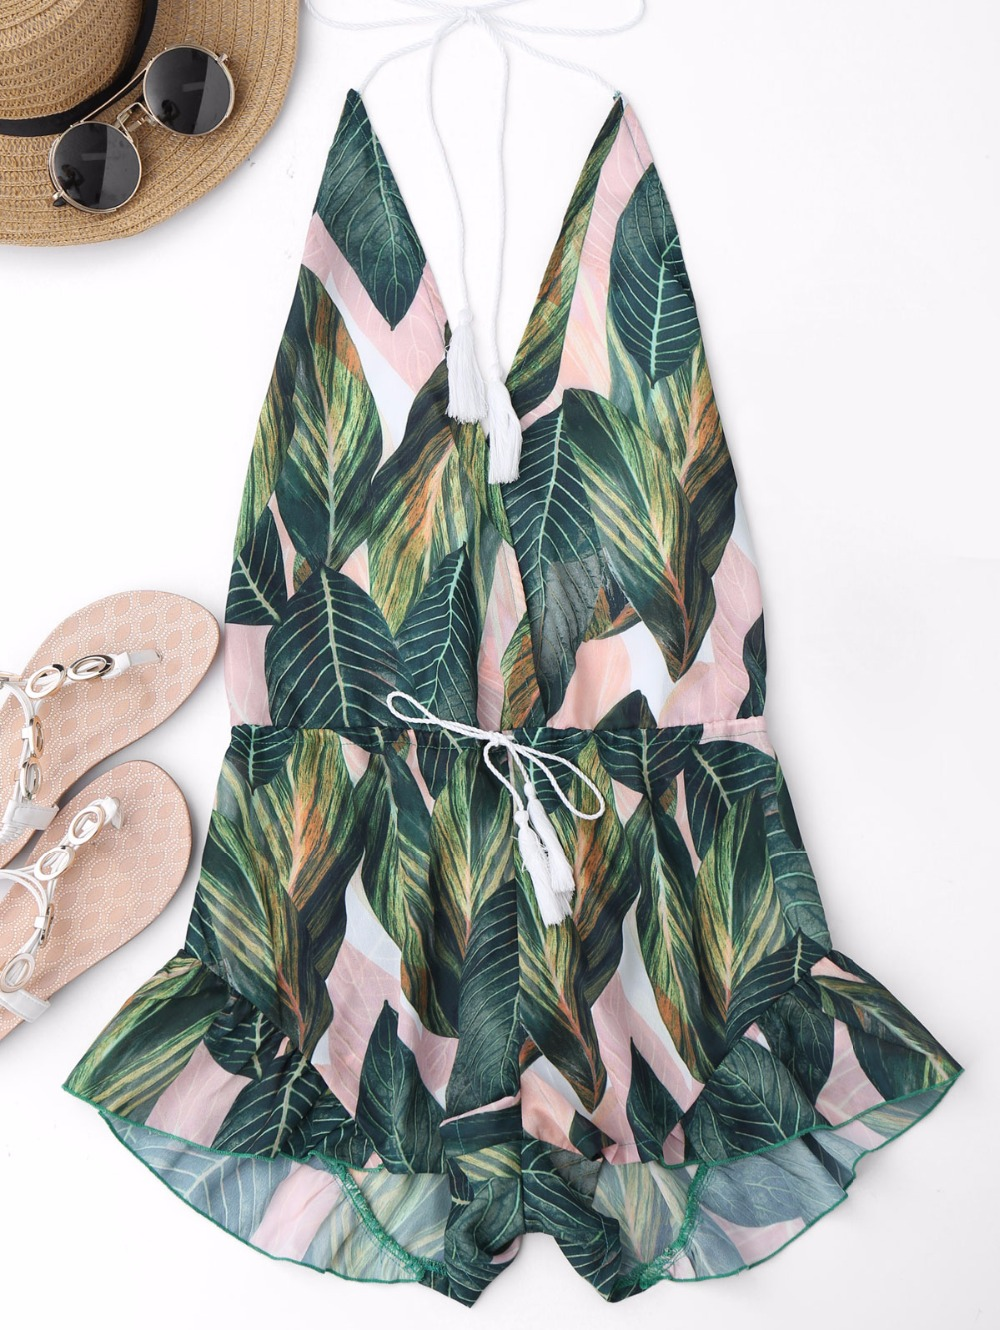 AZULINA Backless Deep V Neck Sexy Halter Romper Jumpsuit Women Drawstring Leaf Print Summer Playsuit Ladies Beach Overalls 2017 4